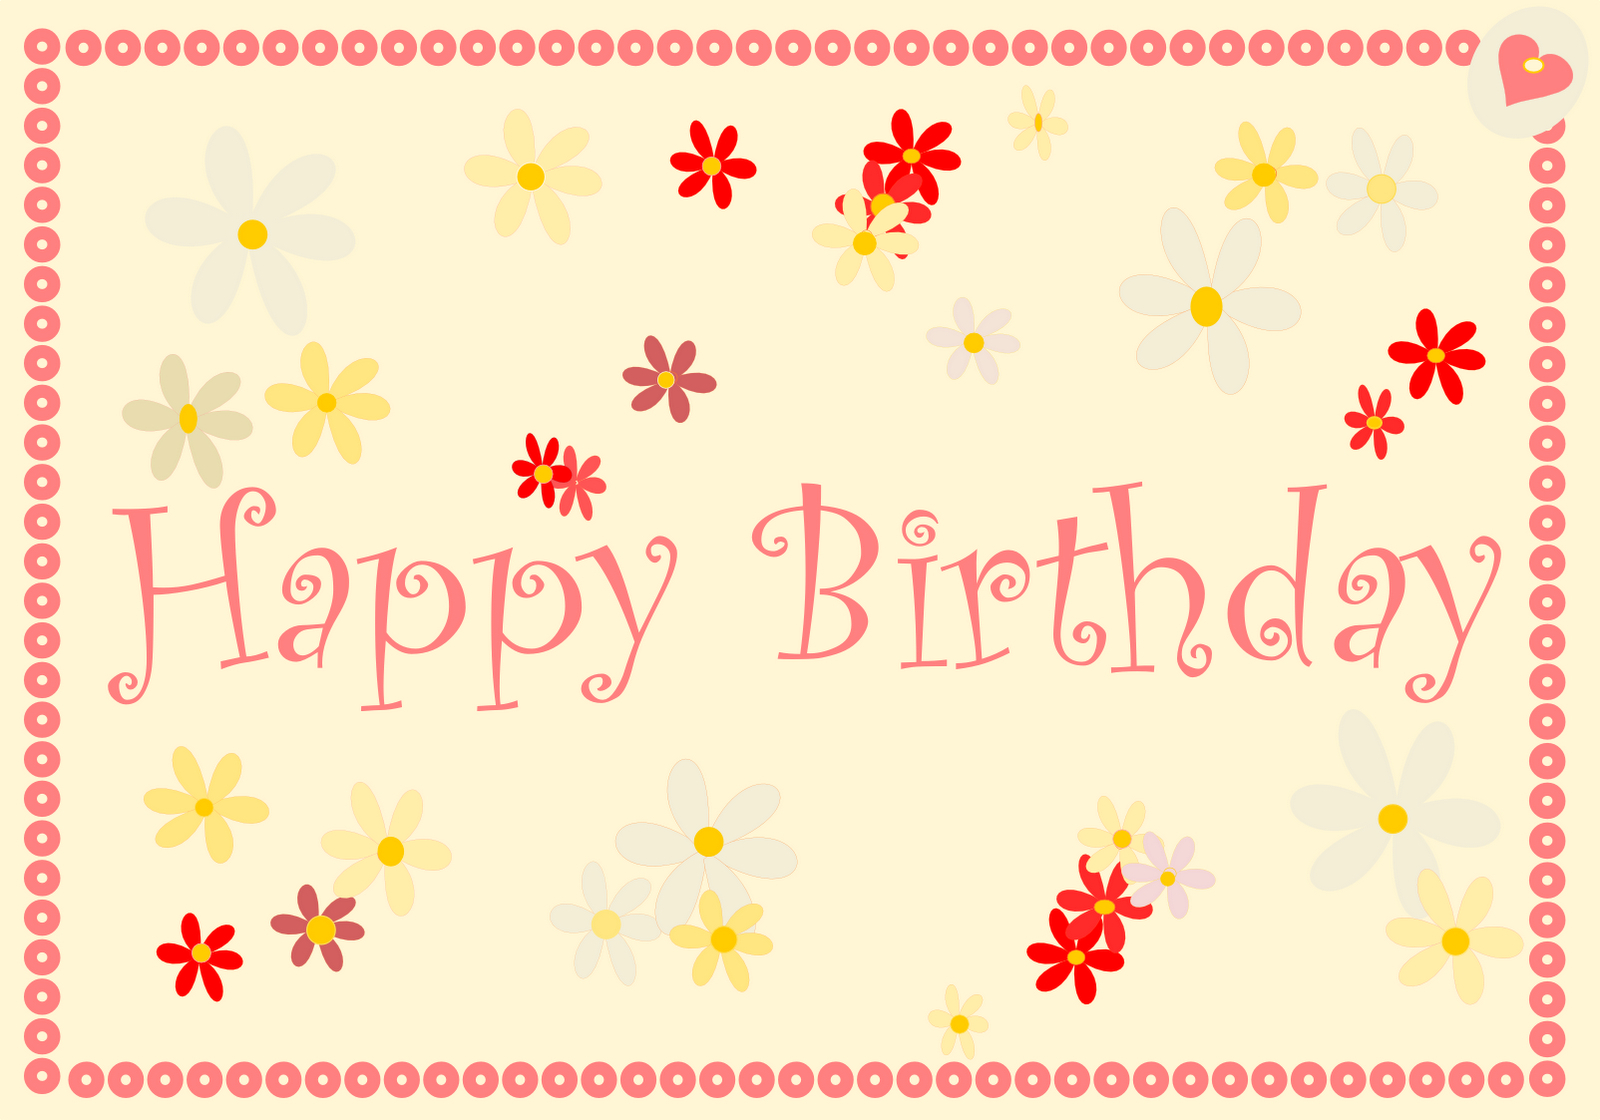 Happy Birthday Cards Online Free Printable - Free Printable Happy Birthday Cards Online